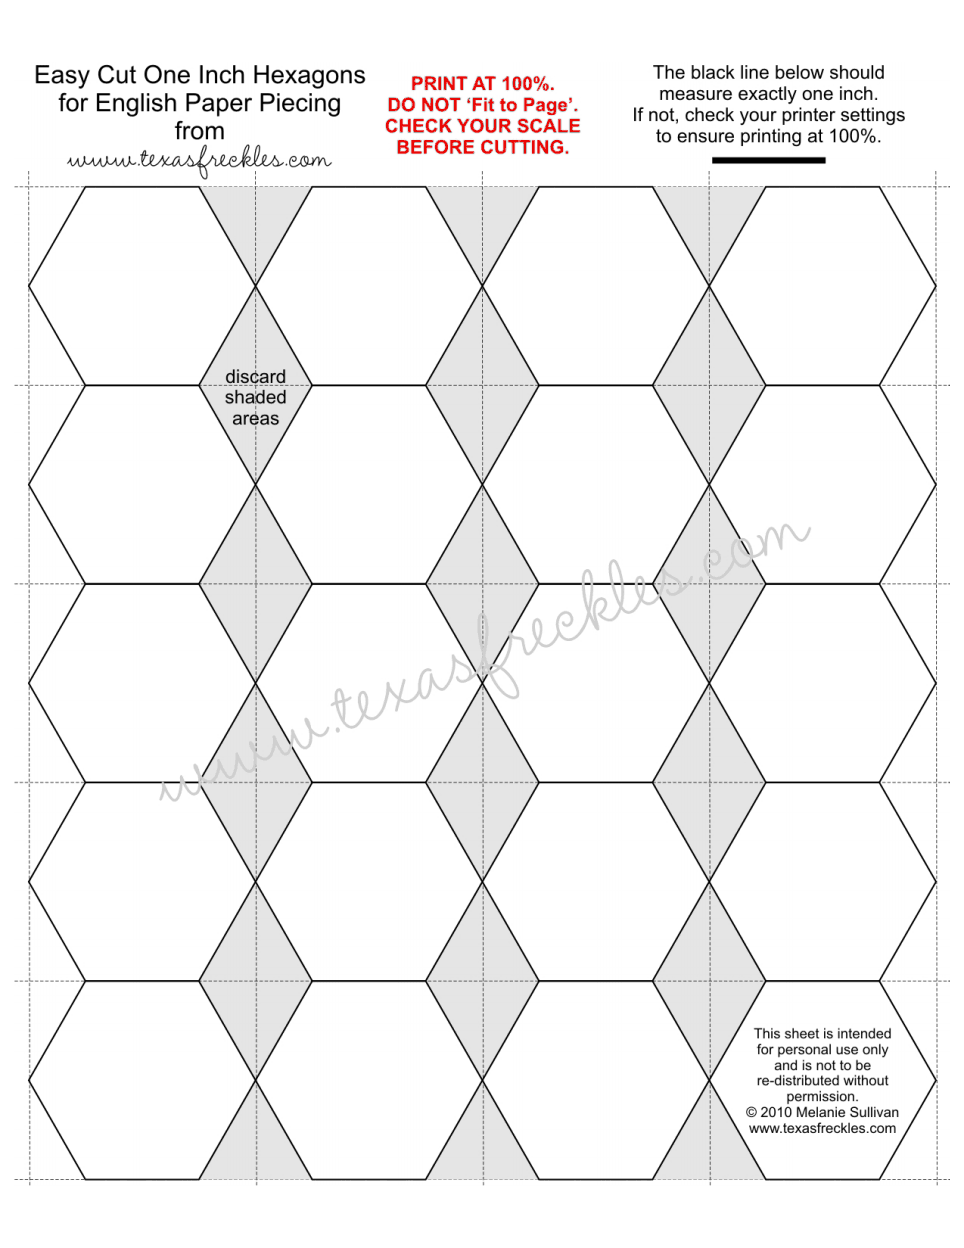 One Inch Hexagons.pdf | Sewing Projects | Pinterest | Paper piecing ...